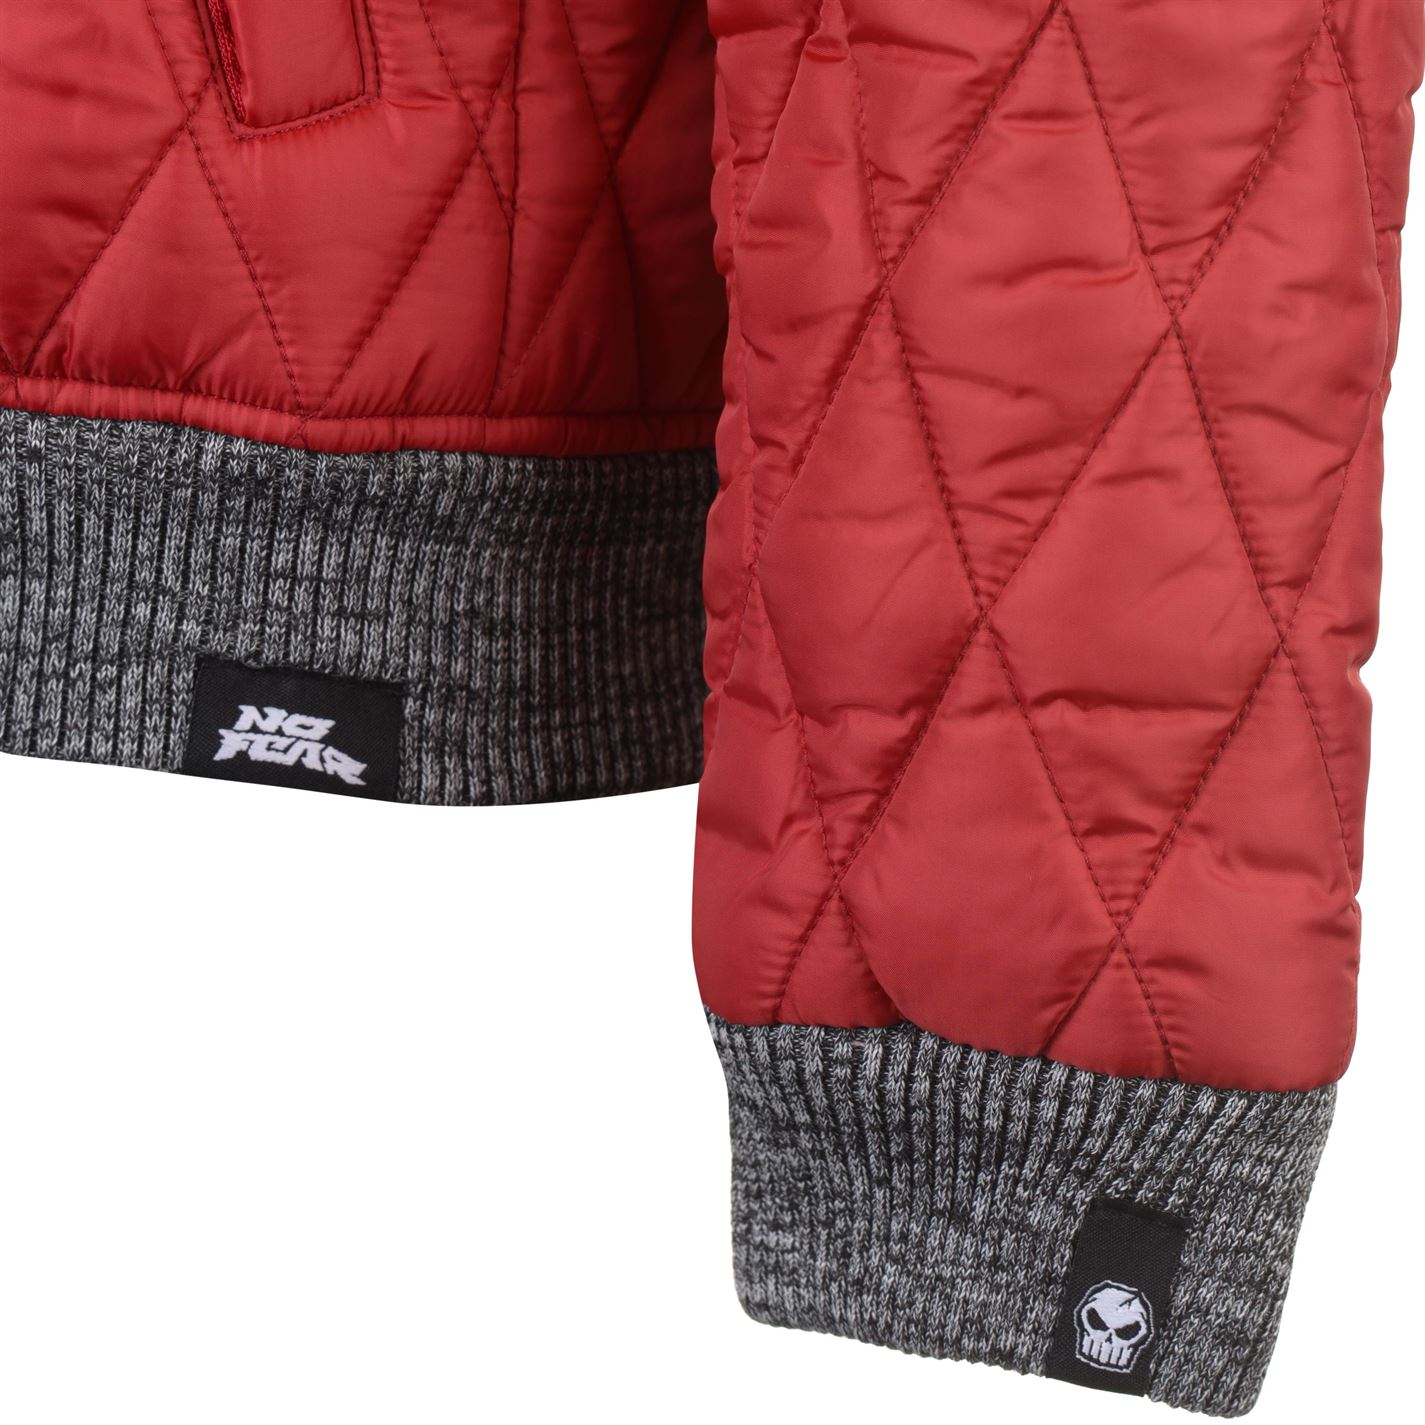 No-Fear-Quilted-Bomber-Jacket-Mens-Gents-Coat-Top-Full-Length-Sleeve-Zip-Zipped thumbnail 12